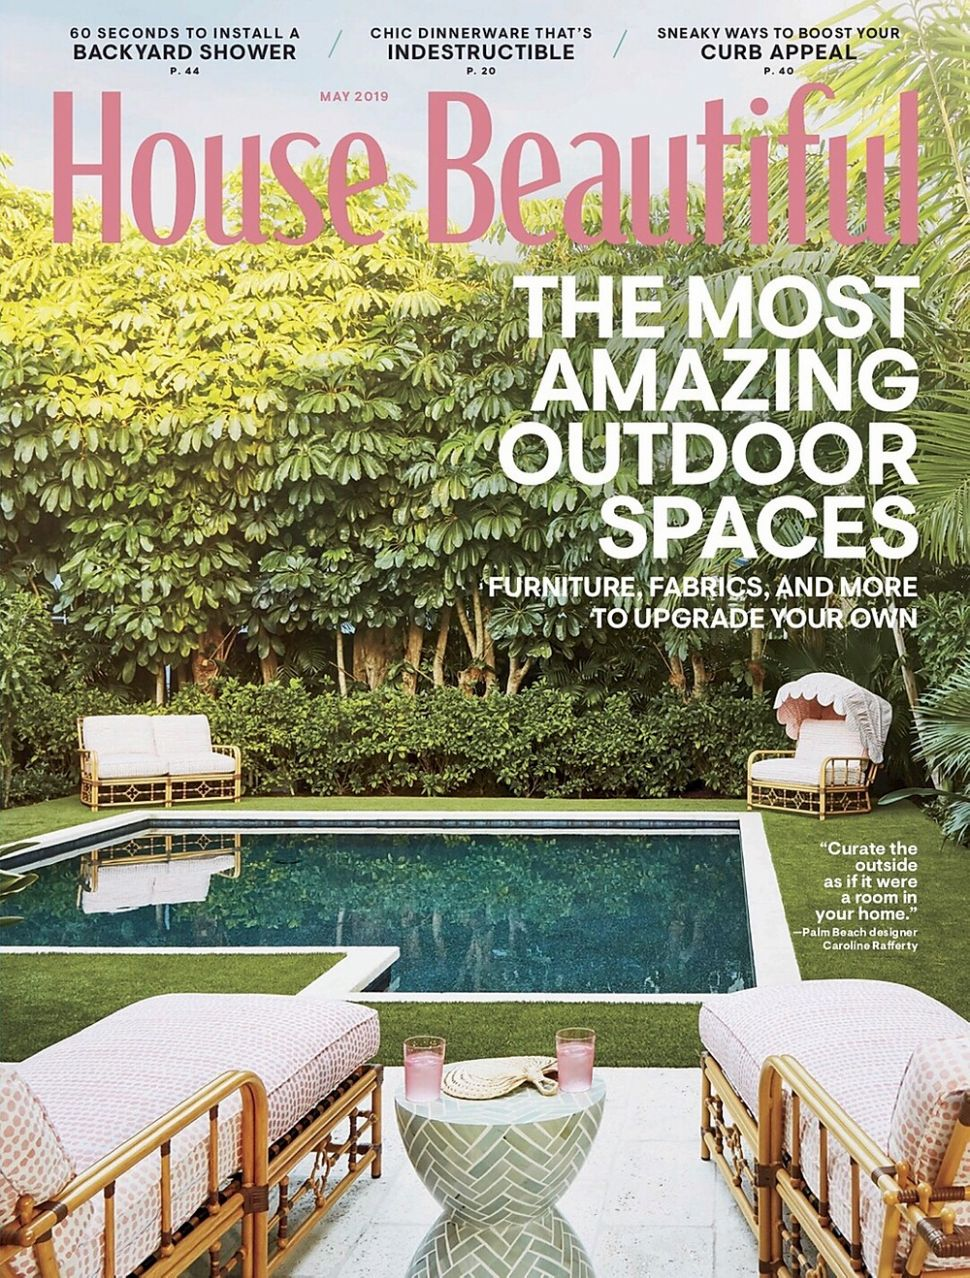 HOUSE BEAUTIFUL talks Inspiration with designer Lisa Tharp - house beautiful inspiration